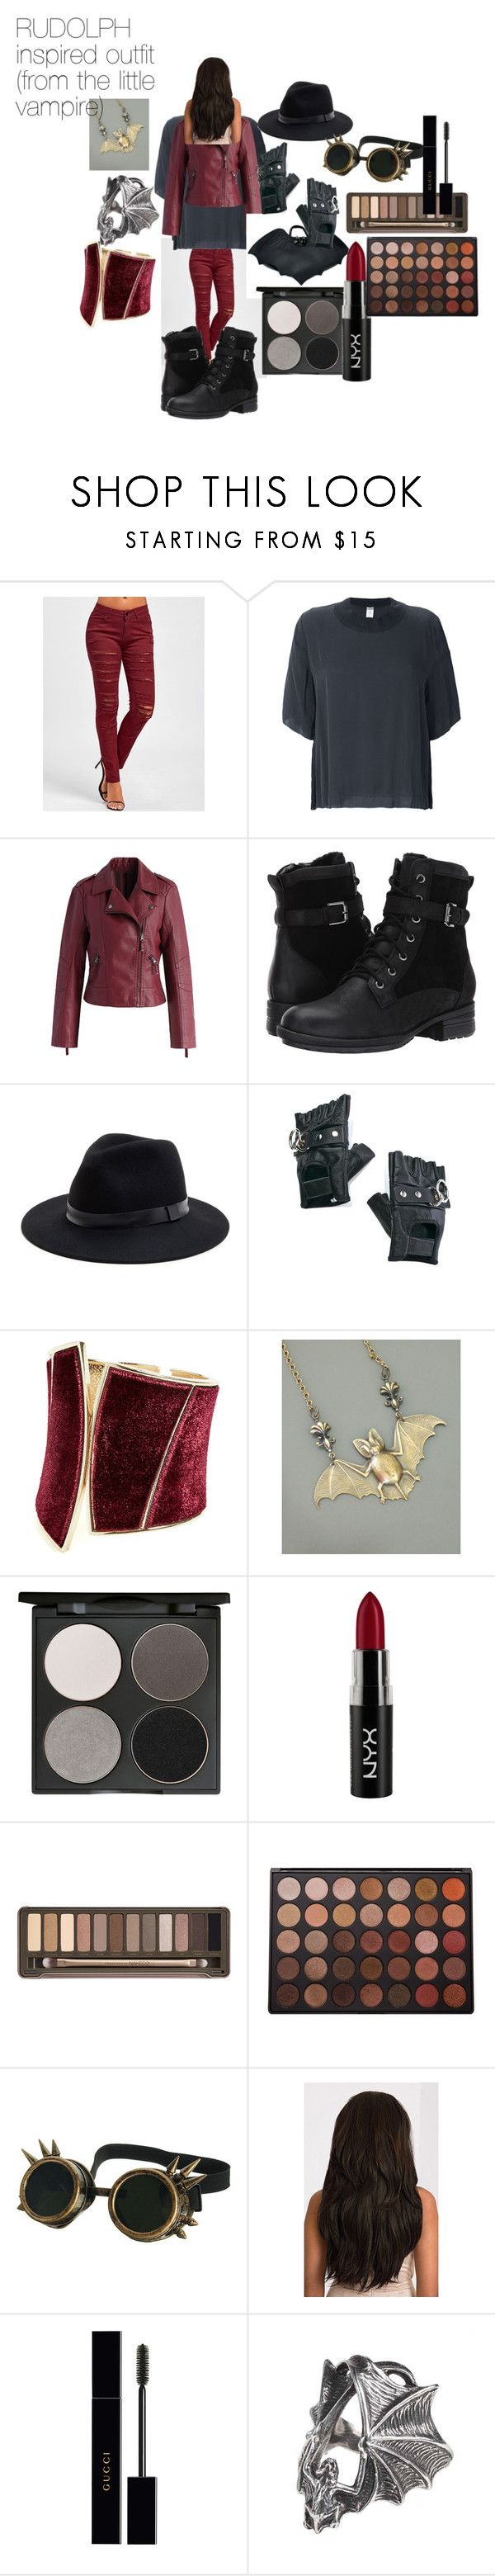 """RUDOLPH INSPIRED OUTFIT"" by tori-camilleri on Polyvore featuring KristenseN du Nord, Chicwish, Blondo, Sole Society, Funk Plus, GUESS by Marciano, Gorgeous Cosmetics, NYX, Urban Decay and Morphe"